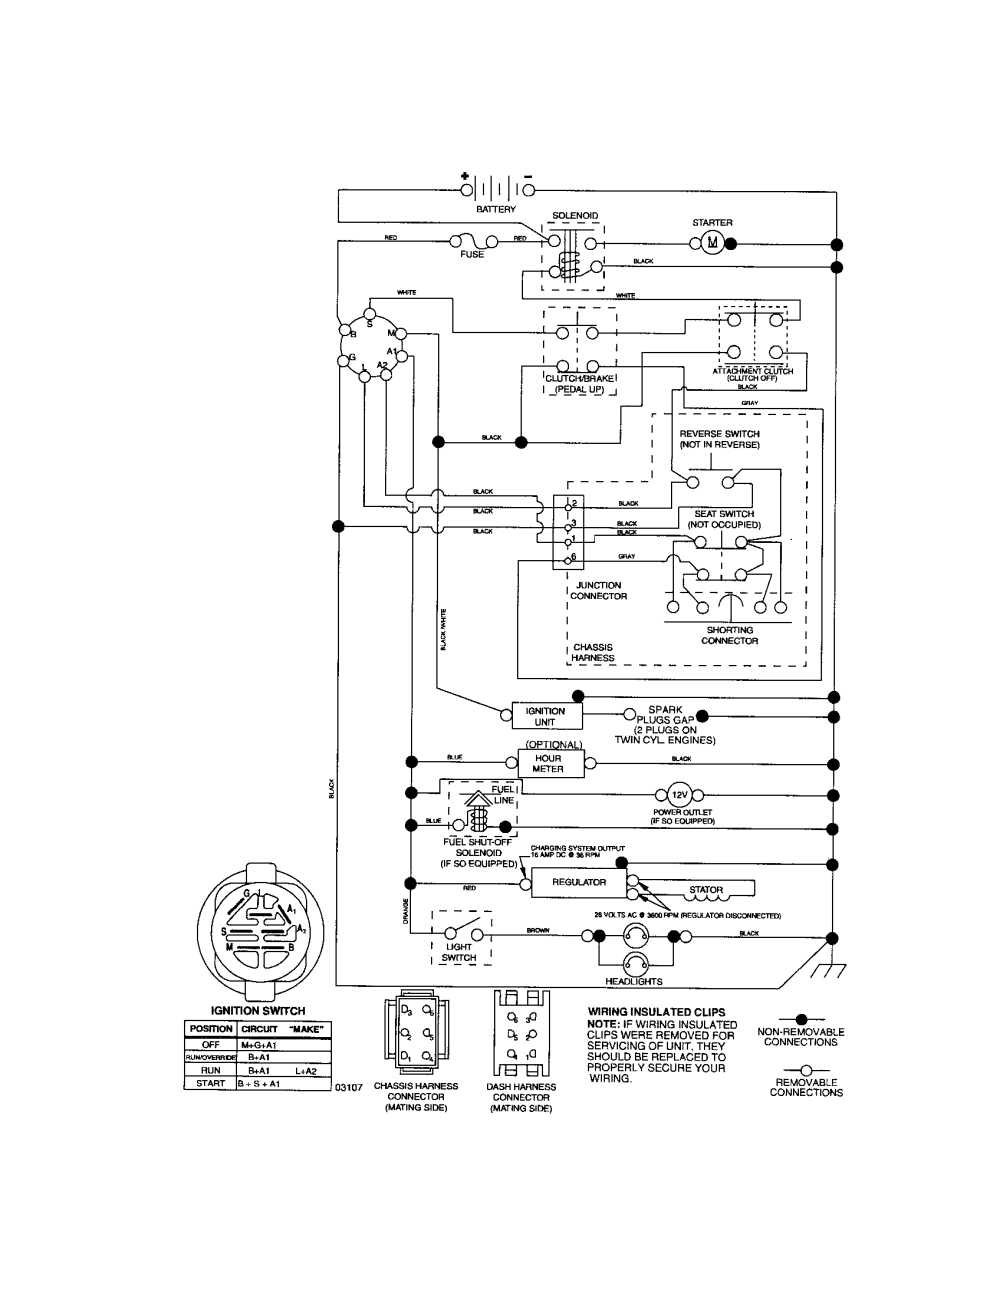 medium resolution of sears wiring diagrams wiring diagram detailed lawn tractor wiring diagram craftsman model 917287261 lawn tractor